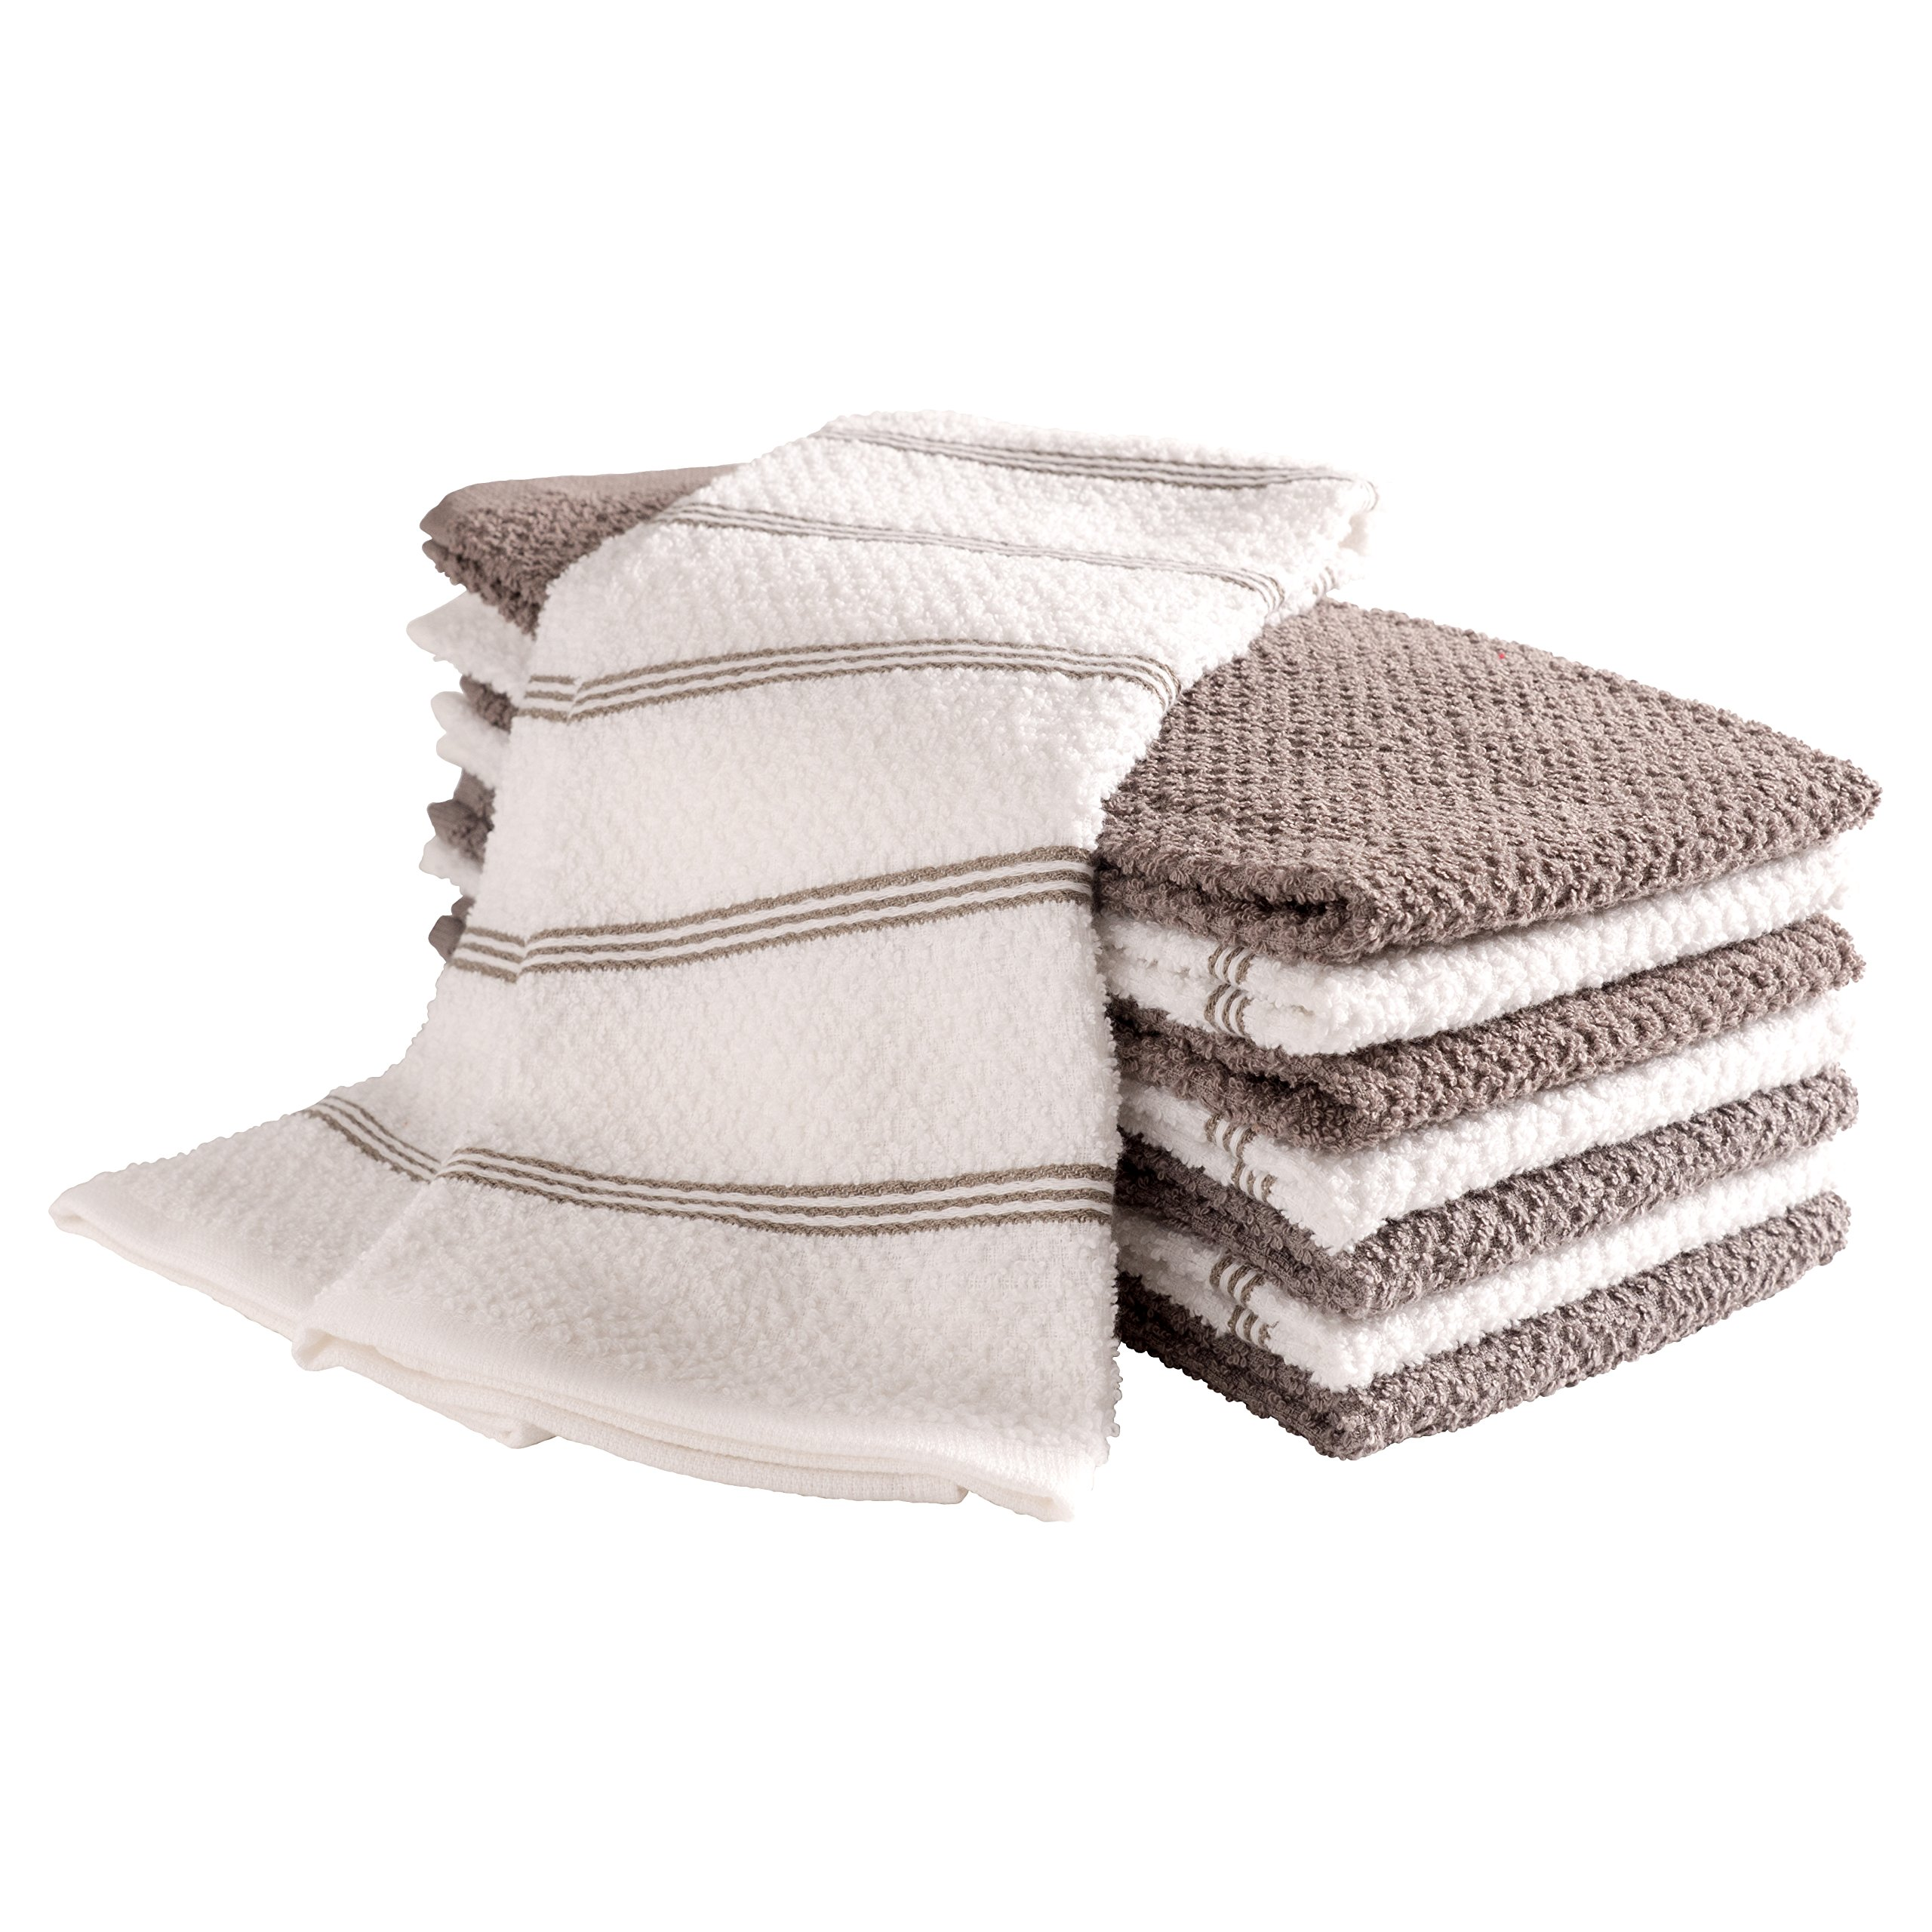 KAF Home Pantry Piedmont Kitchen Towels (Set of 8, 16x26 inches), 100% Cotton, Ultra Absorbent Terry Towels - Dark Grey